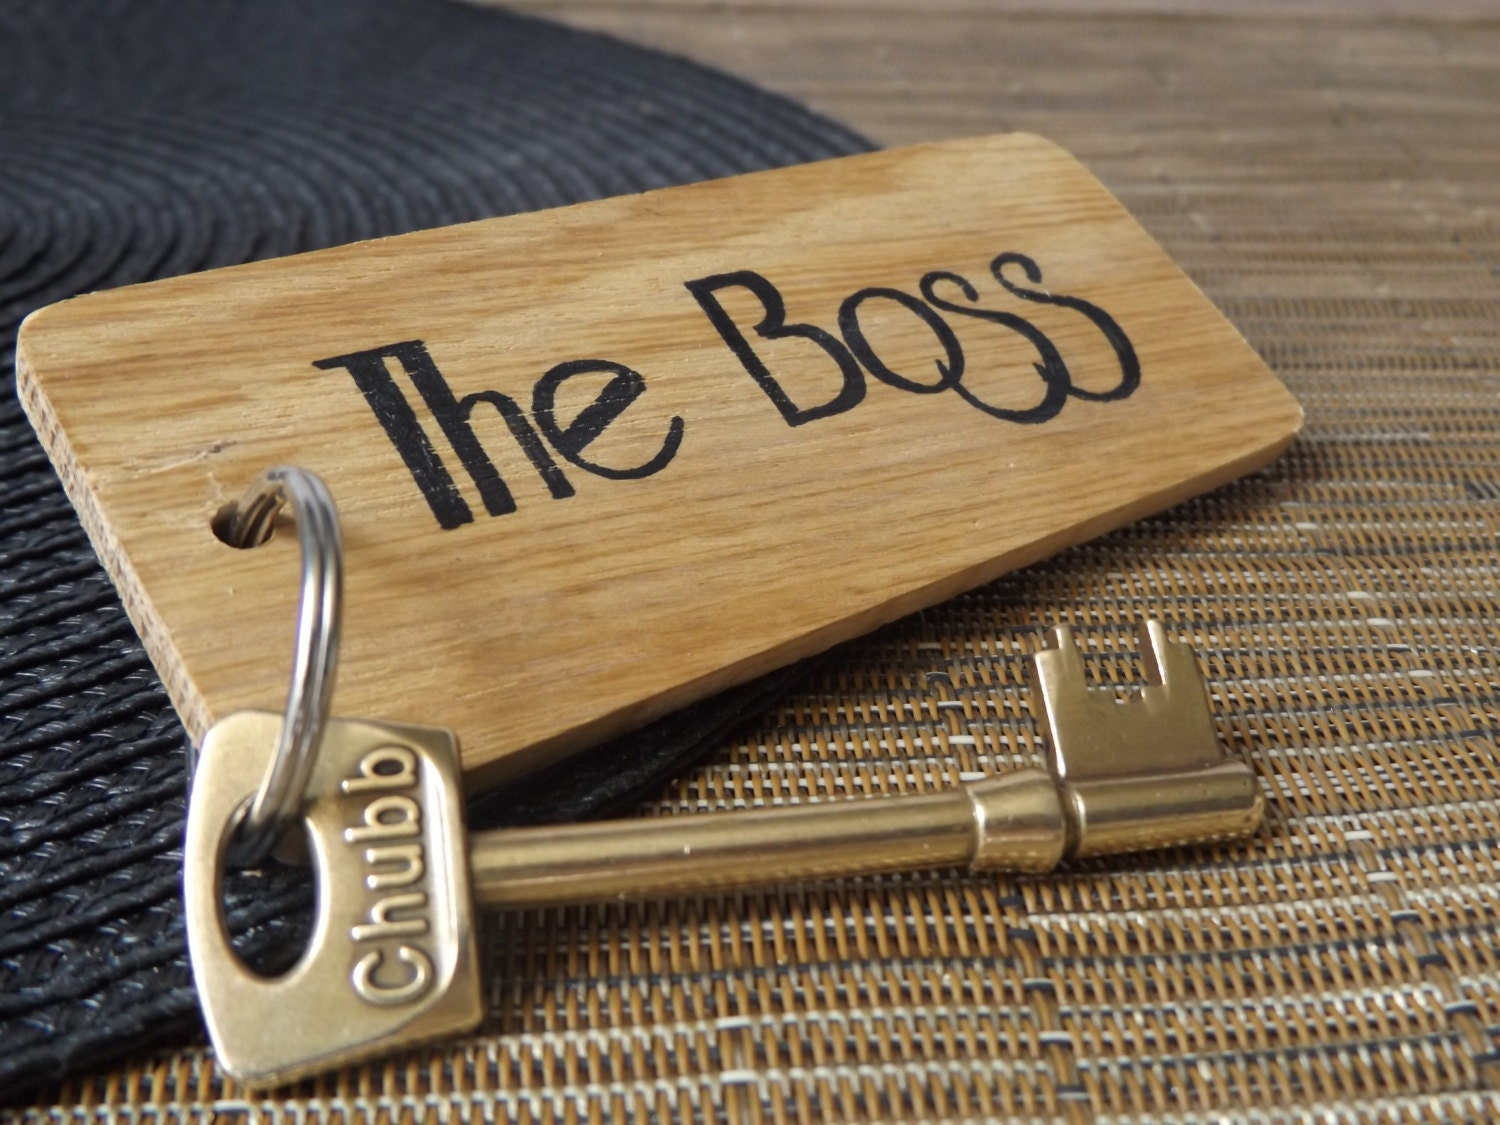 Boss Keyring  Oak wood Keyring  Business Keyring  Manager Keyring  Work  Office  Coworker  Colleague  Gifts for him  Gifts for her